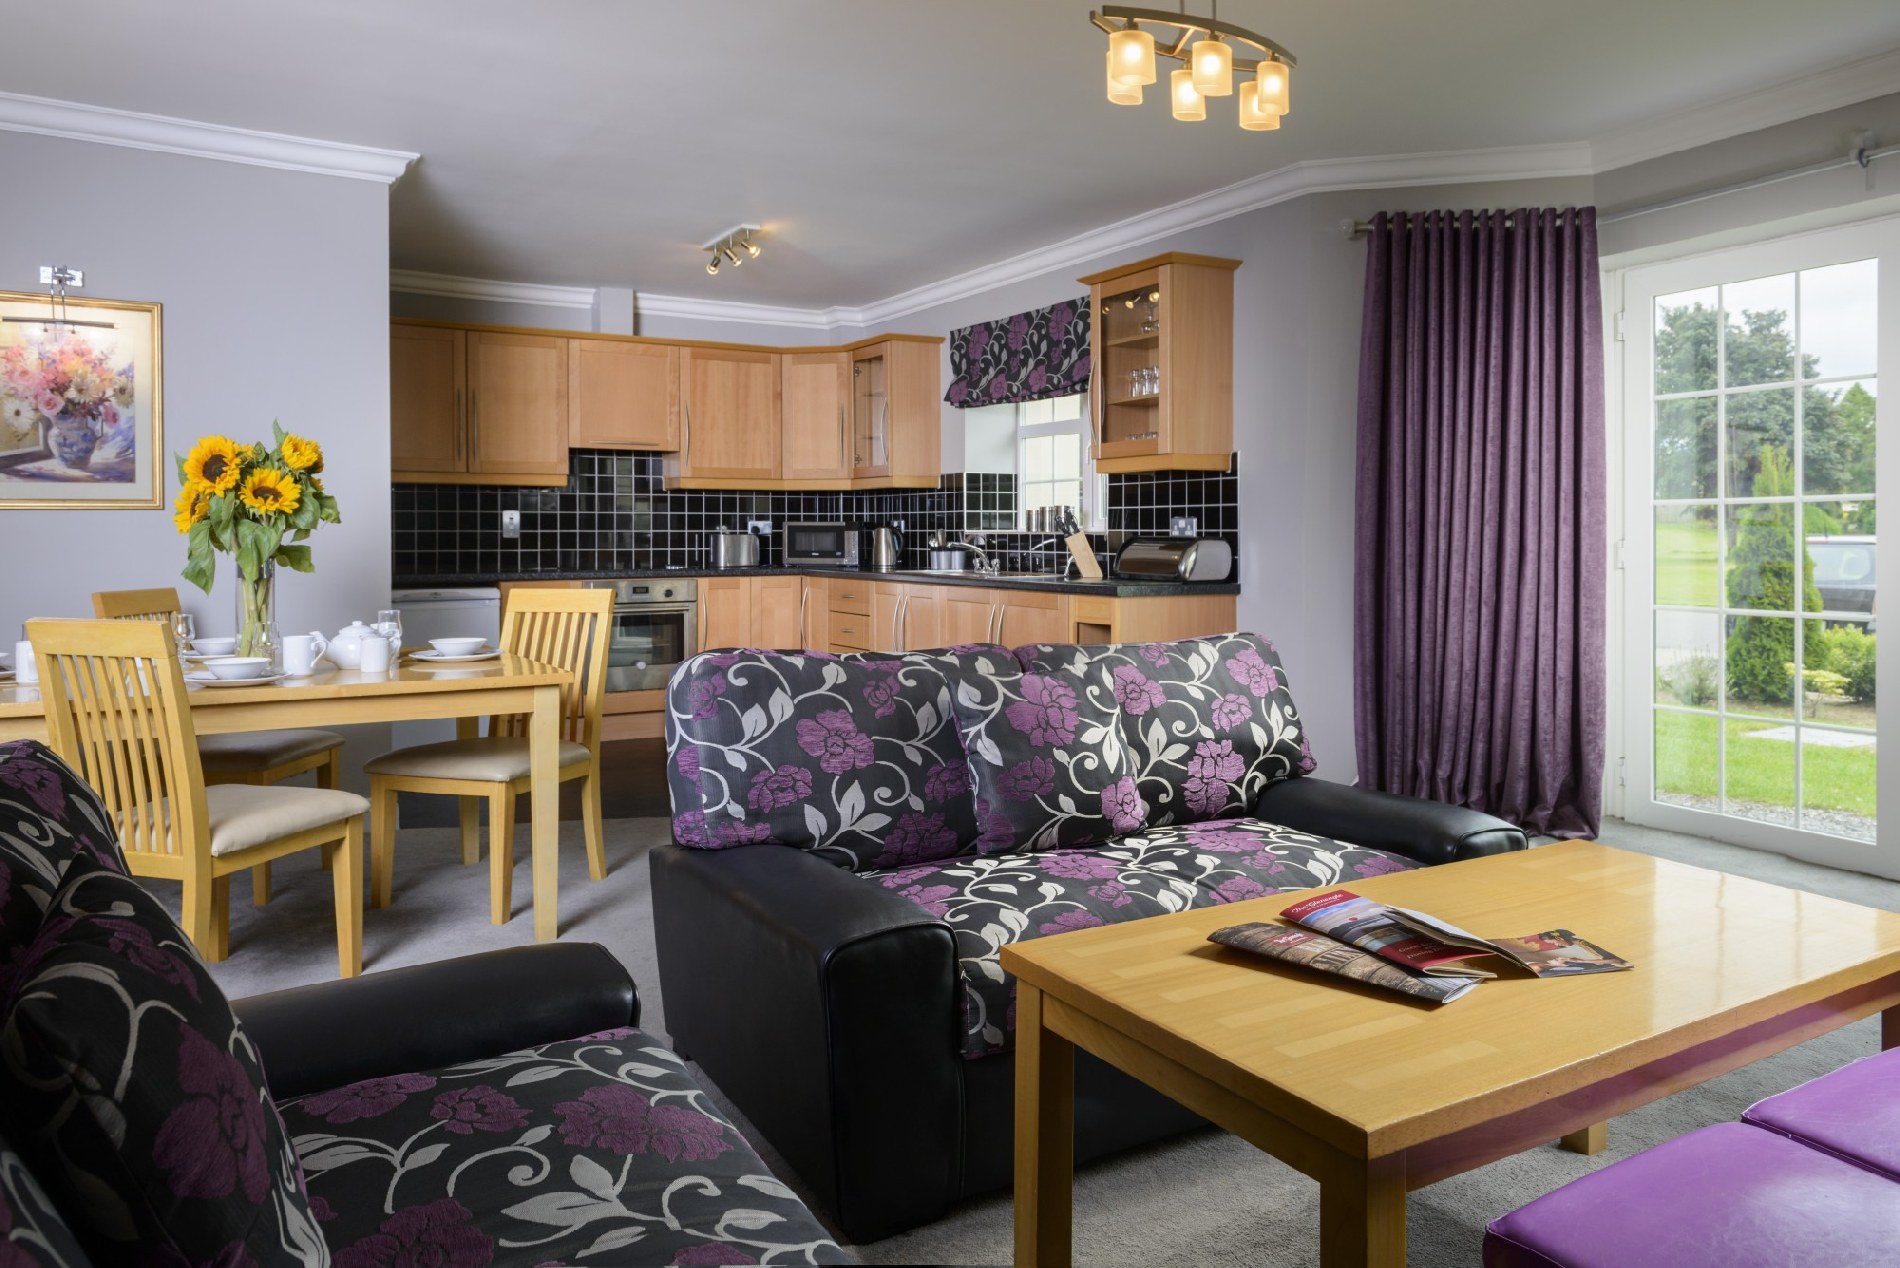 Self Catering Apartments Killarney Family Ac modation